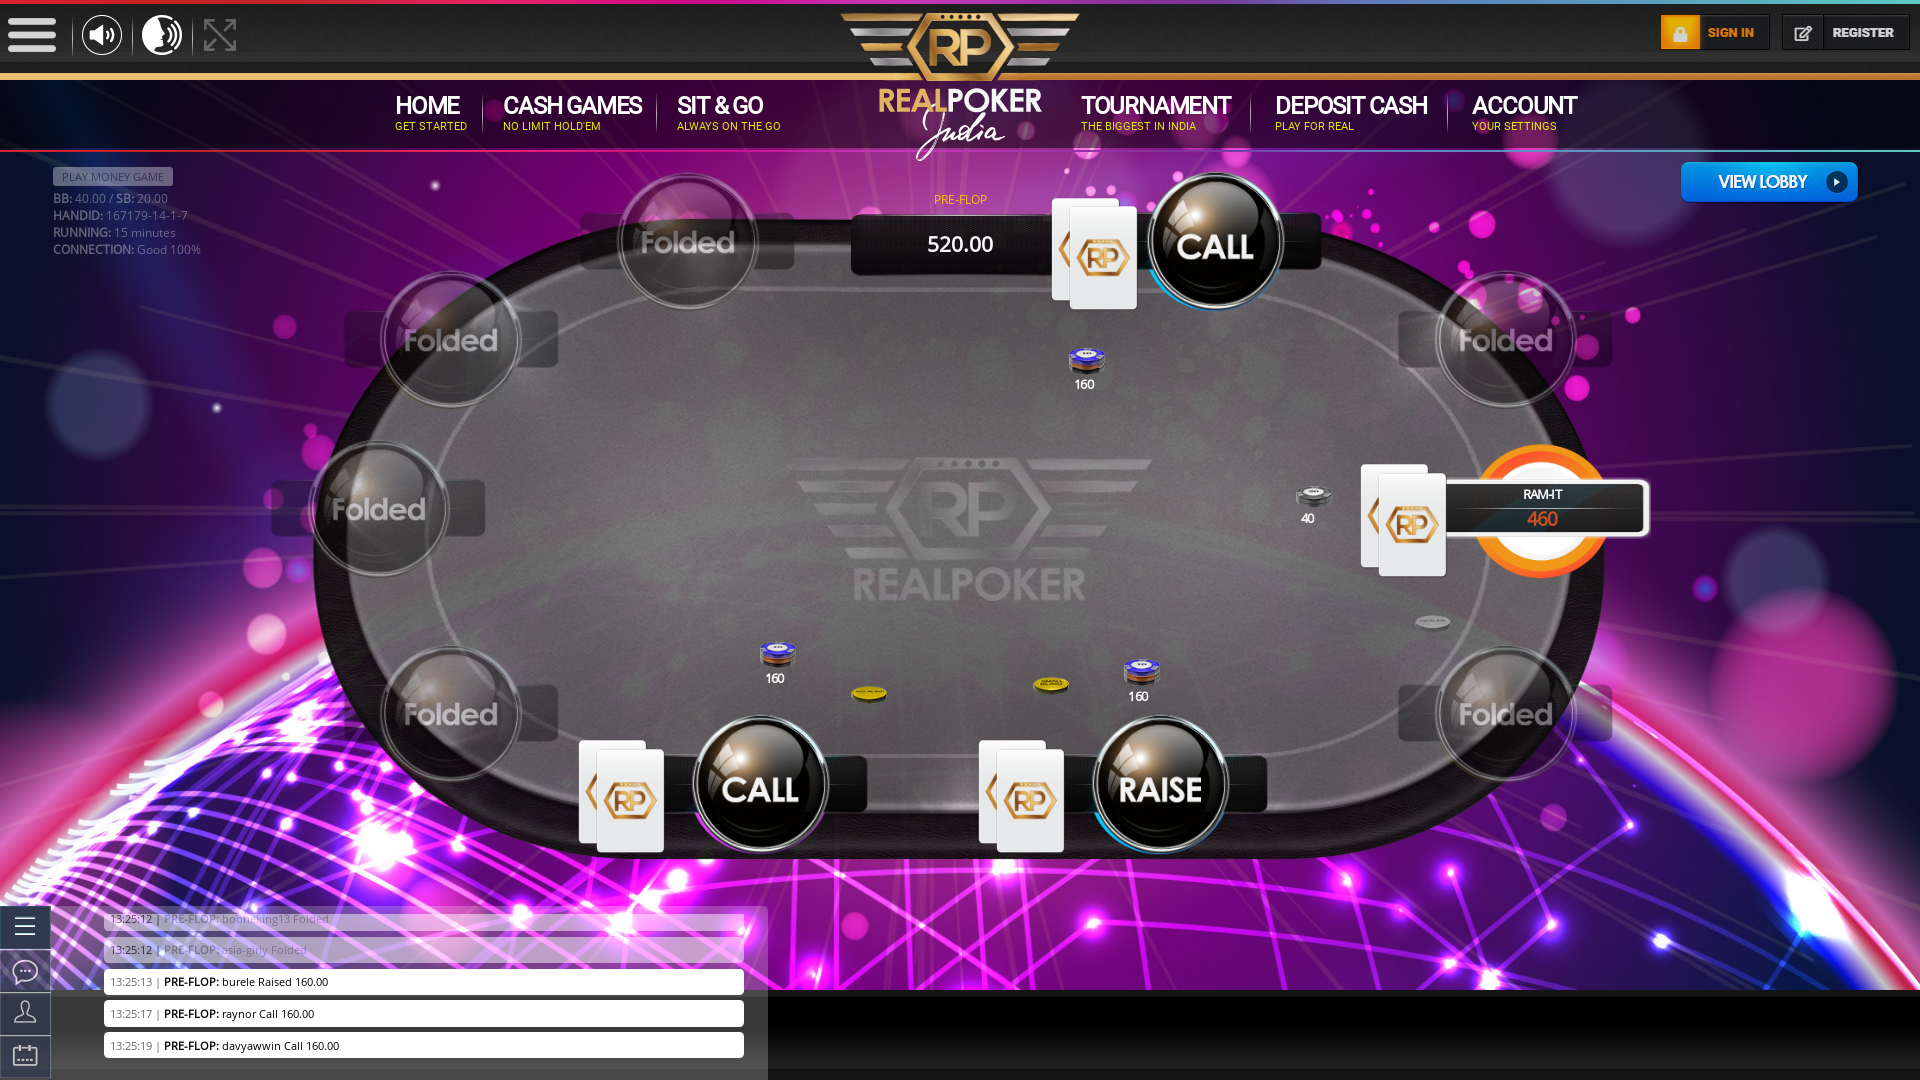 Asansol Indian Poker 10 Player